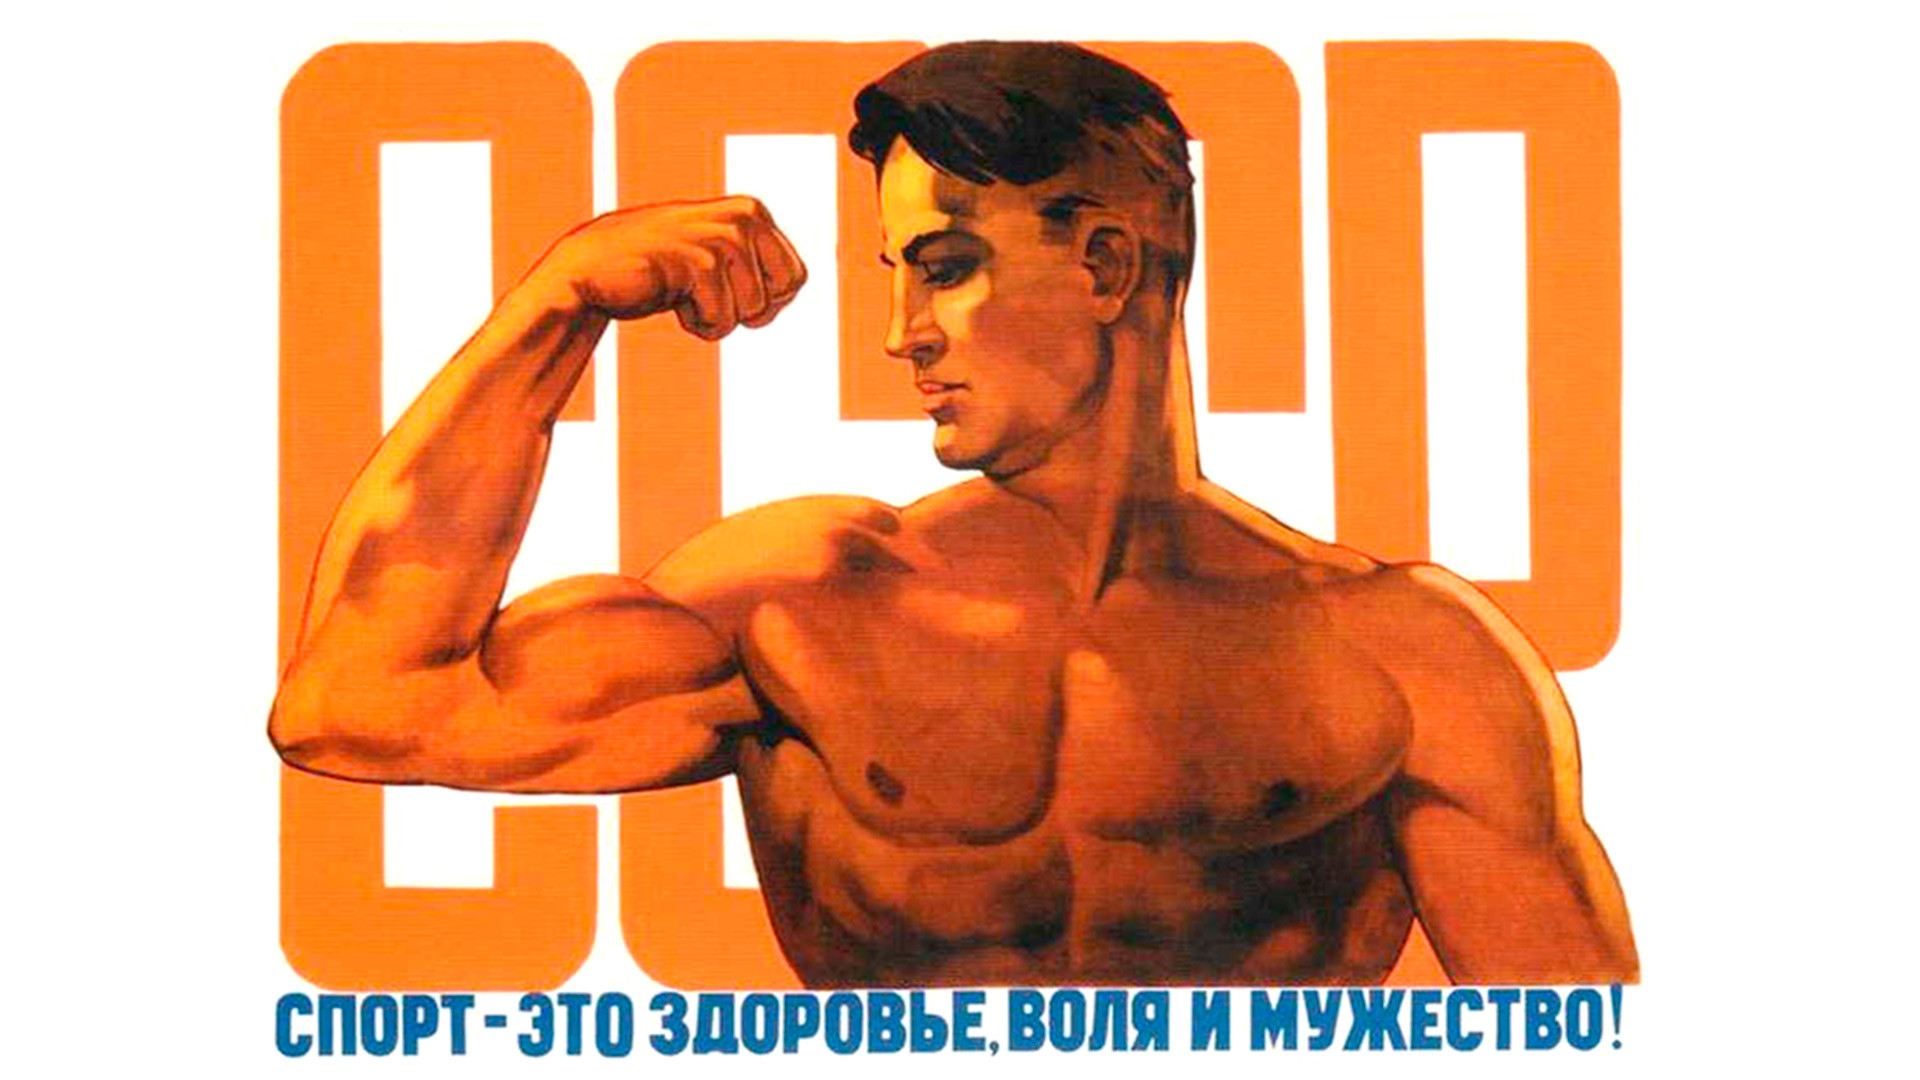 The main victories of the Soviet sport